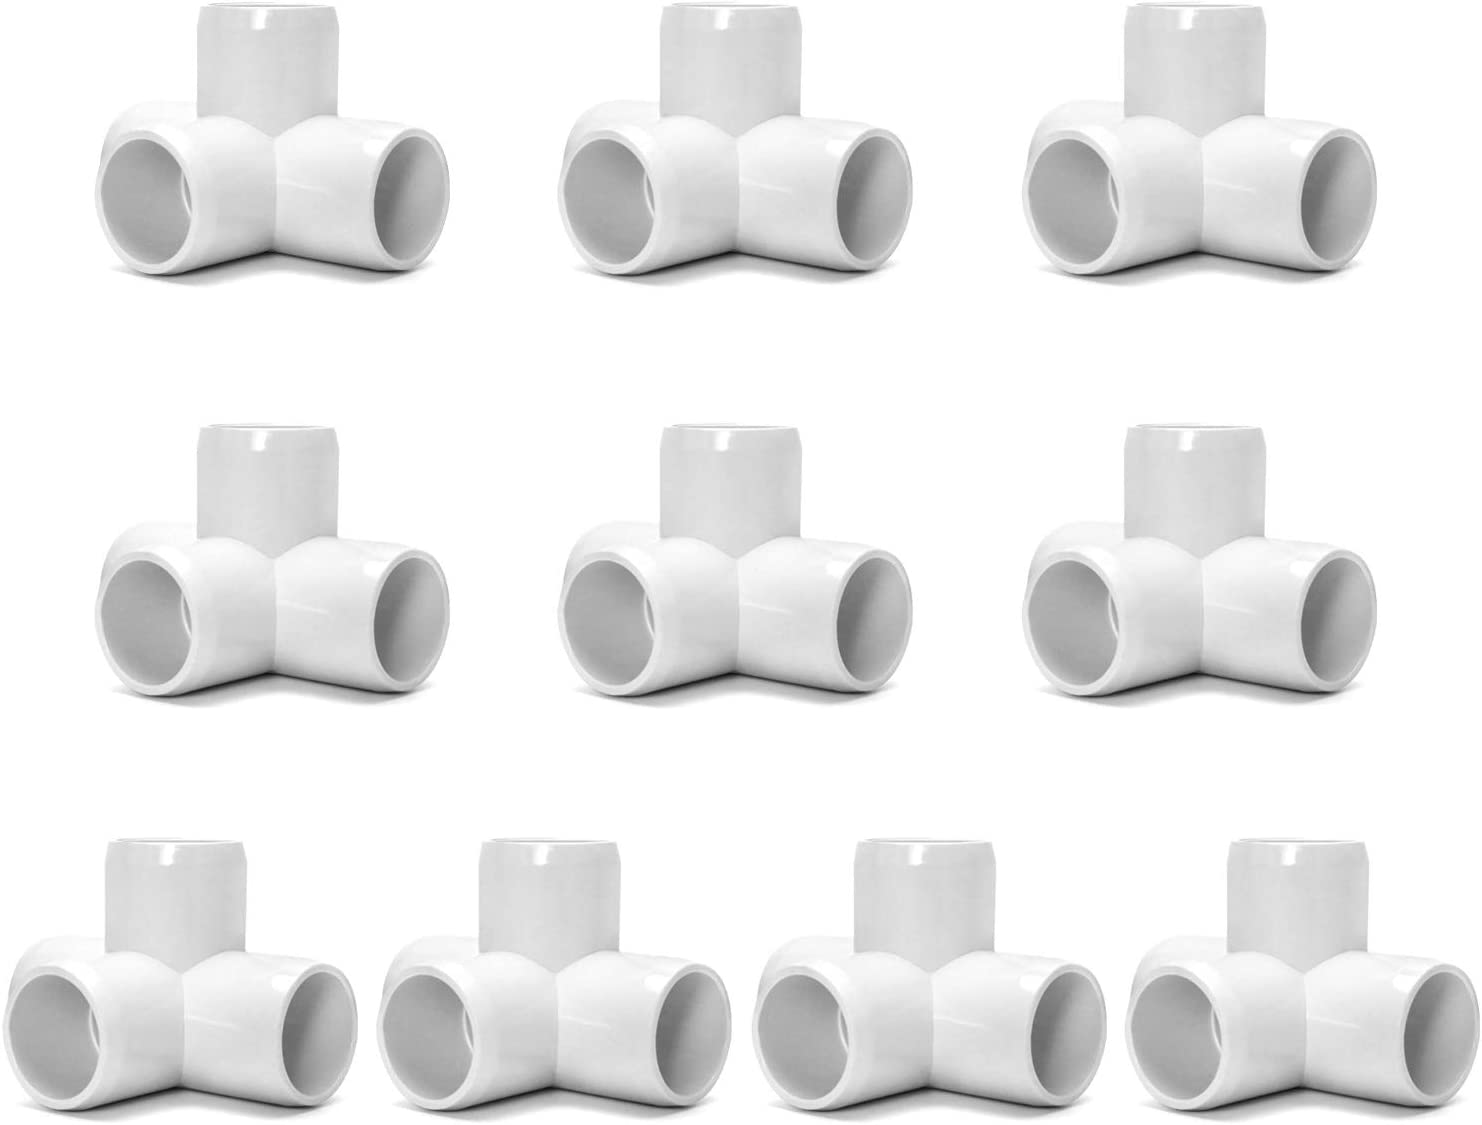 "QWORK 4 Way 1/2"" Tee PVC Fitting Elbow,10 Pack PVC Fitting Connector,Furniture Grade, for Building Furniture and PVC Structures, White"